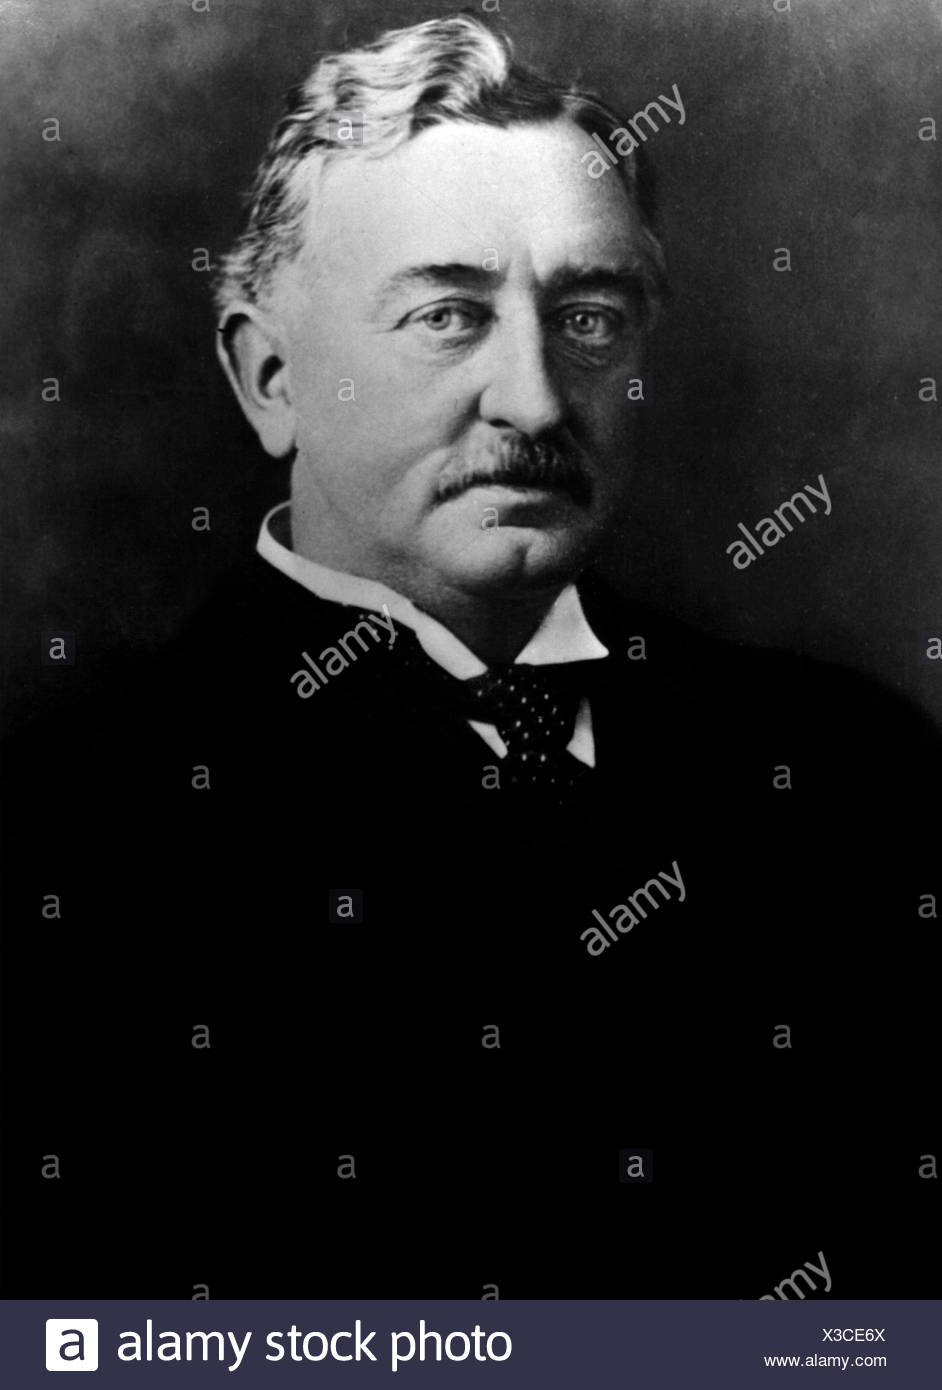 Rhodes, Cecil  5.7.1853 - 26.3.1902, British politican, Prime Minister of the Cape Colony 1890 - 1896, portrait, 19th century, Additional-Rights-Clearances-NA - Stock Image